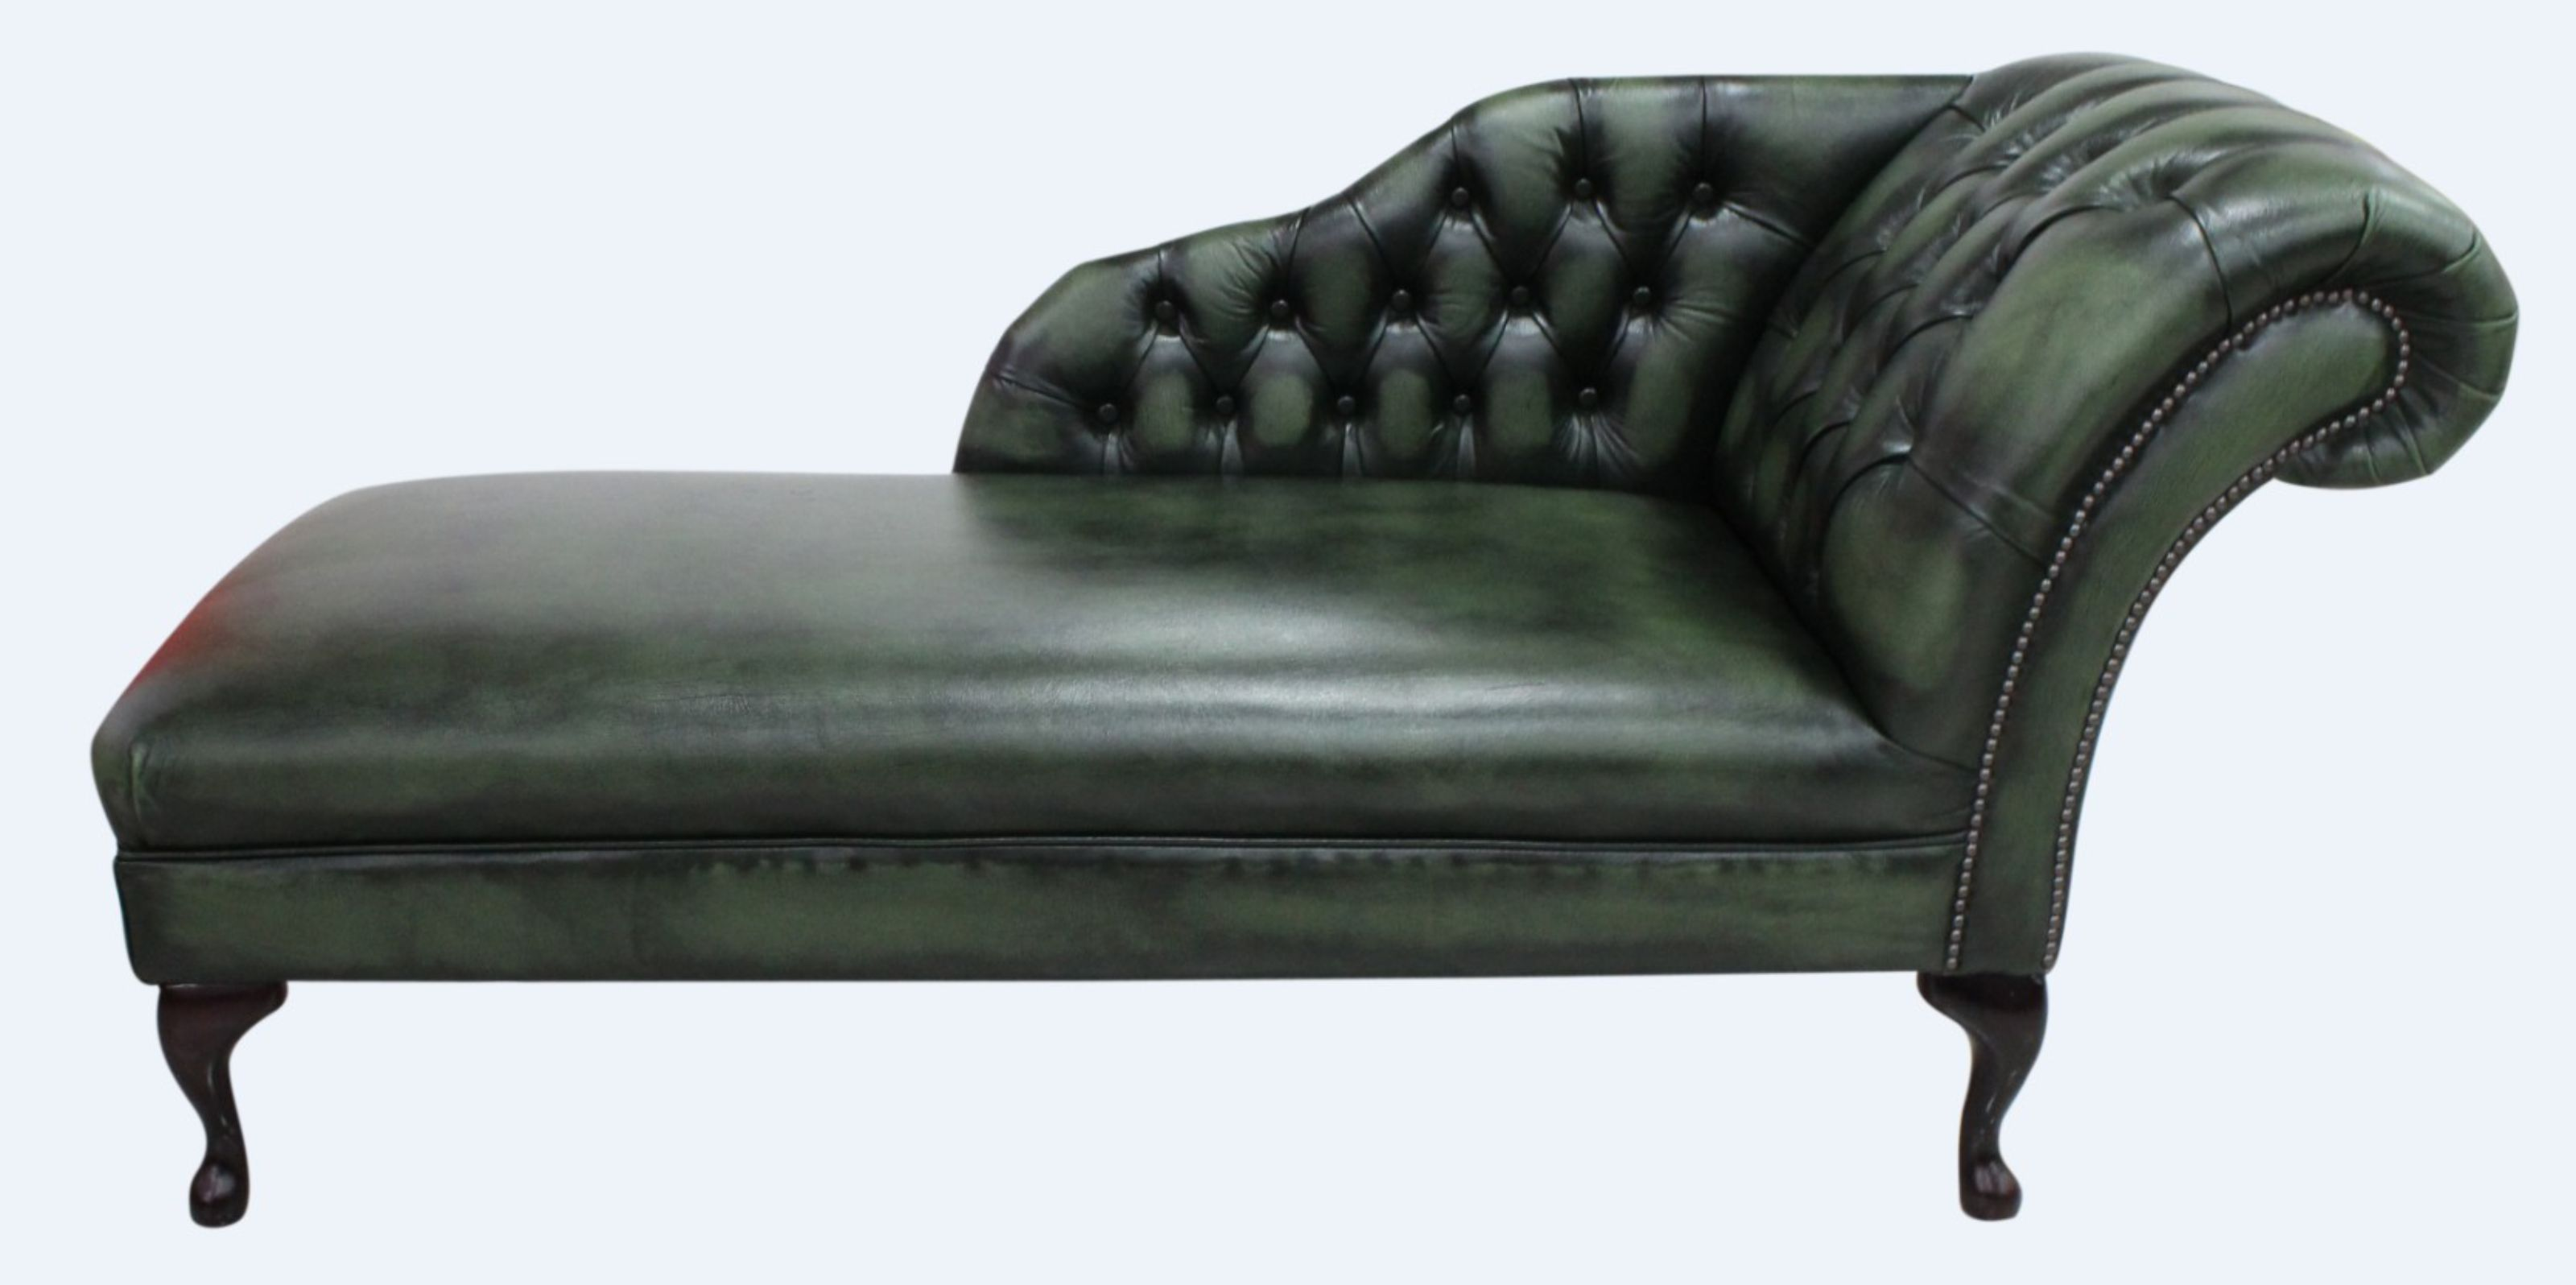 Peachy Chesterfield Leather Chaise Lounge Day Bed Antique Green Customarchery Wood Chair Design Ideas Customarcherynet